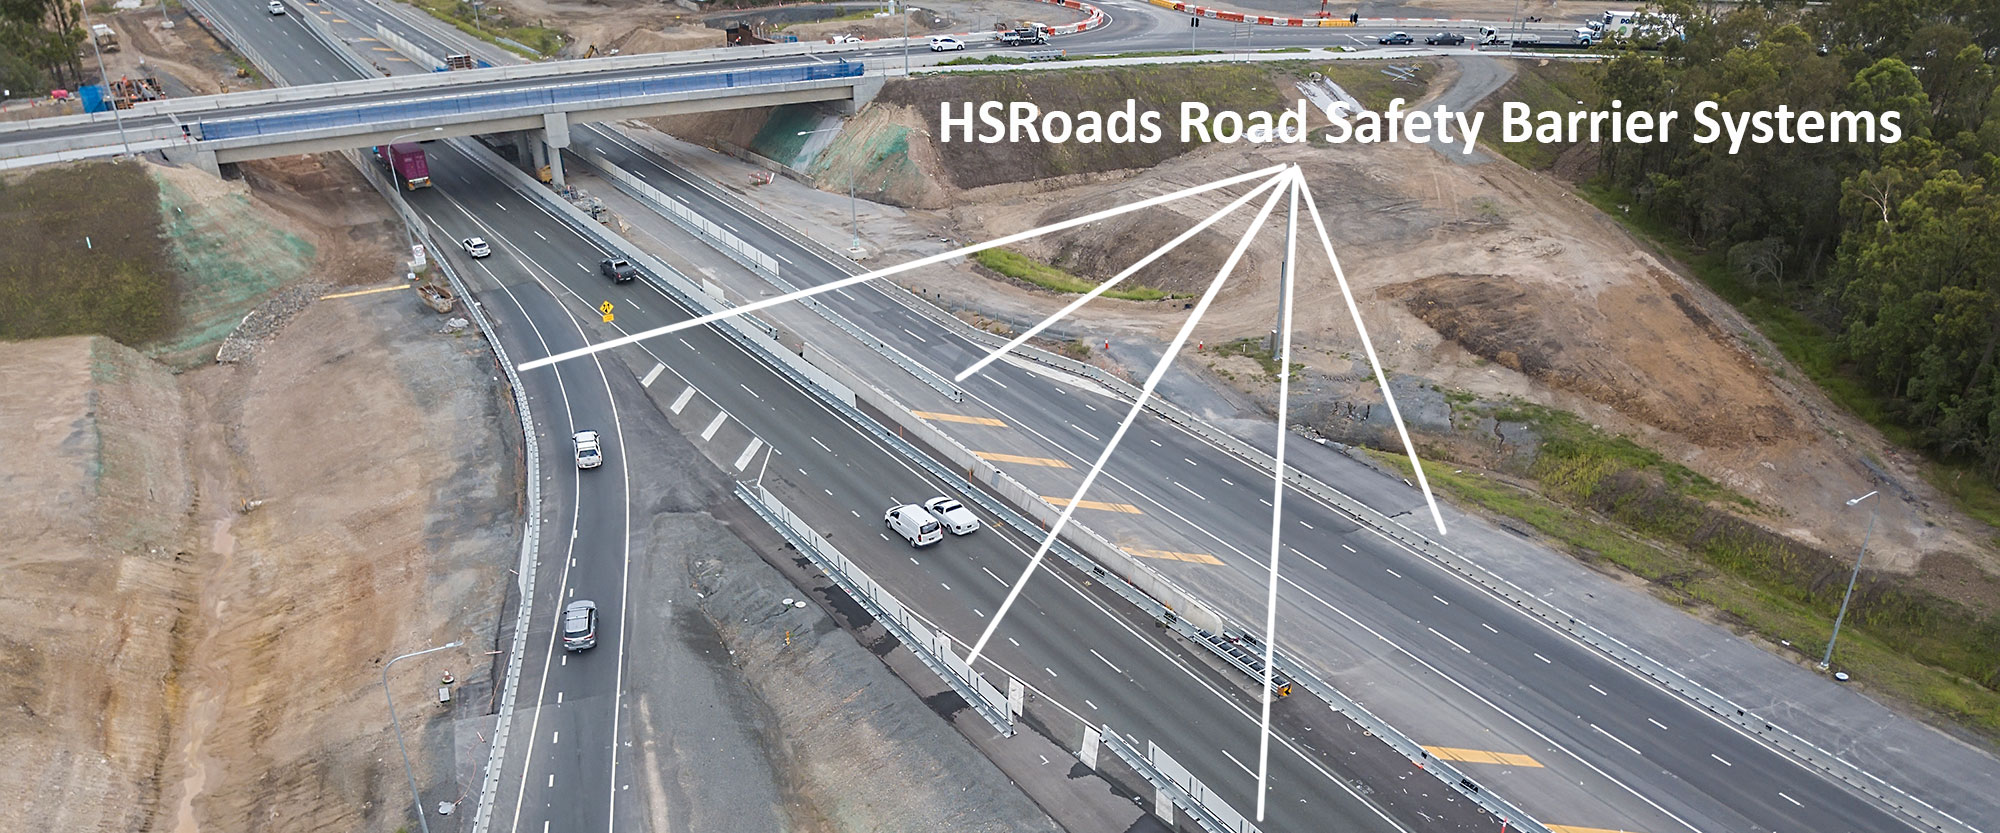 30 metres in the air - Aerial Drone Photography for HSRoads Logan Enhancement Project DroneAce 01